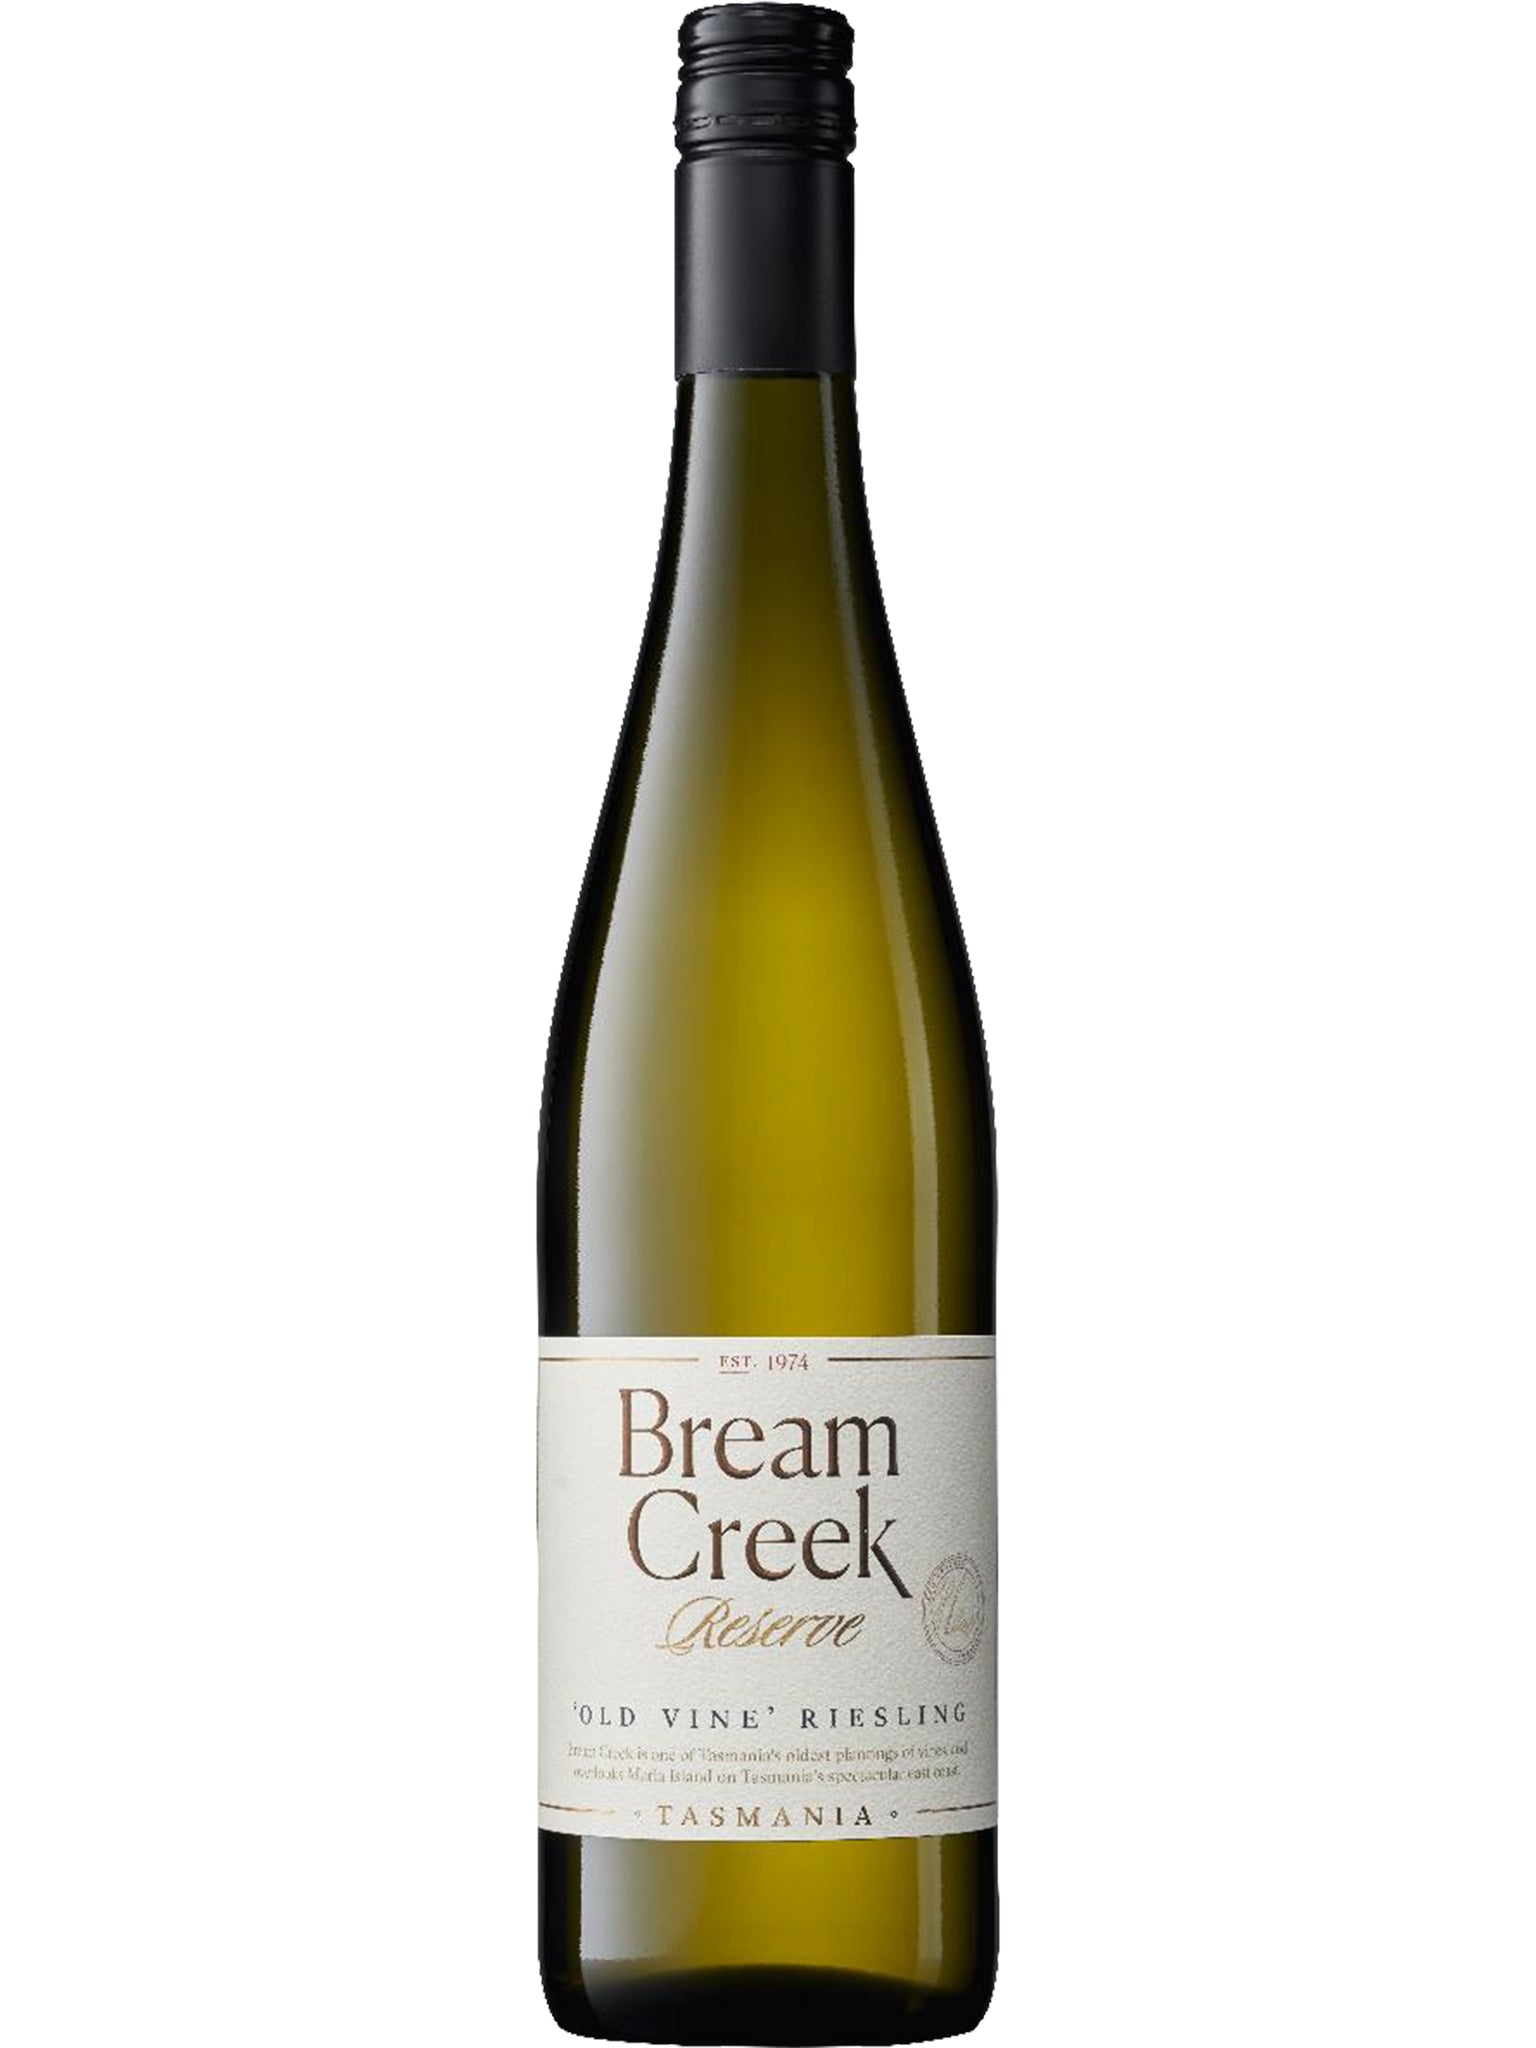 Bream Creek Old Vine Reserve Riesling 6pk 2018